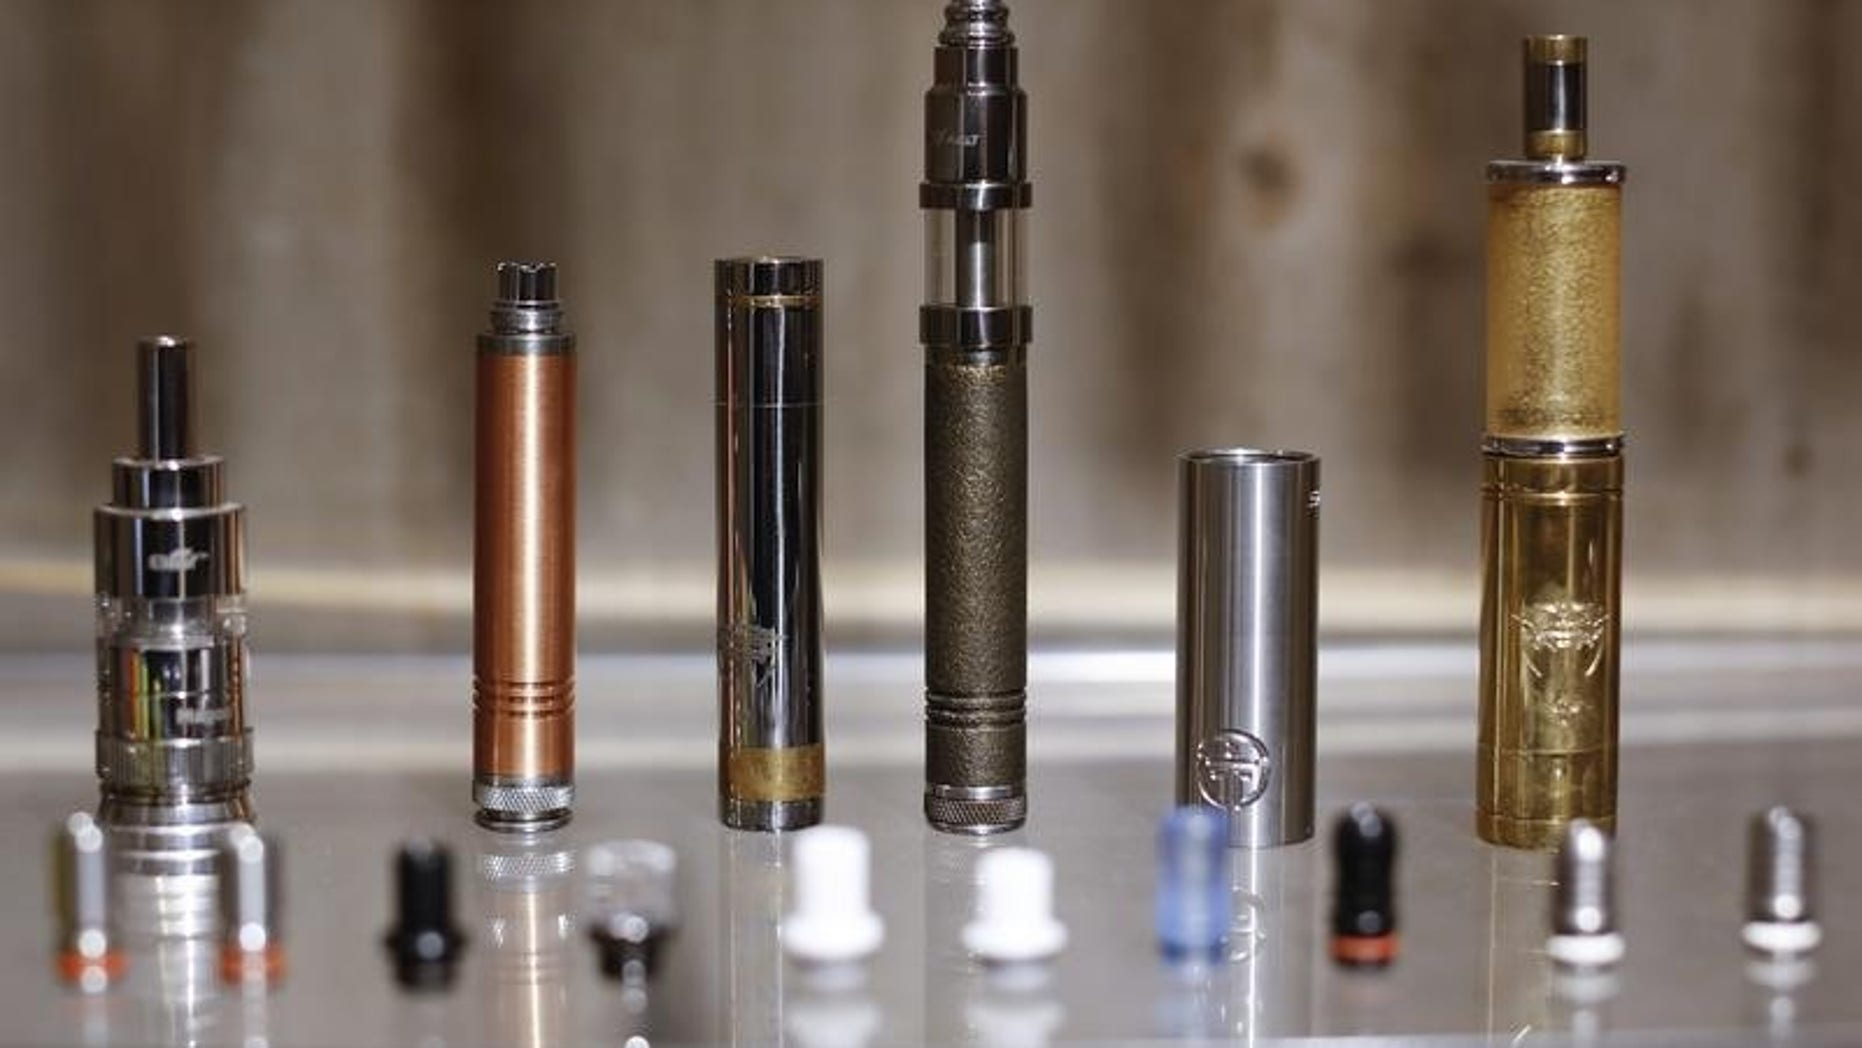 E-cigarettes are displayed in a shop in downtown Rome